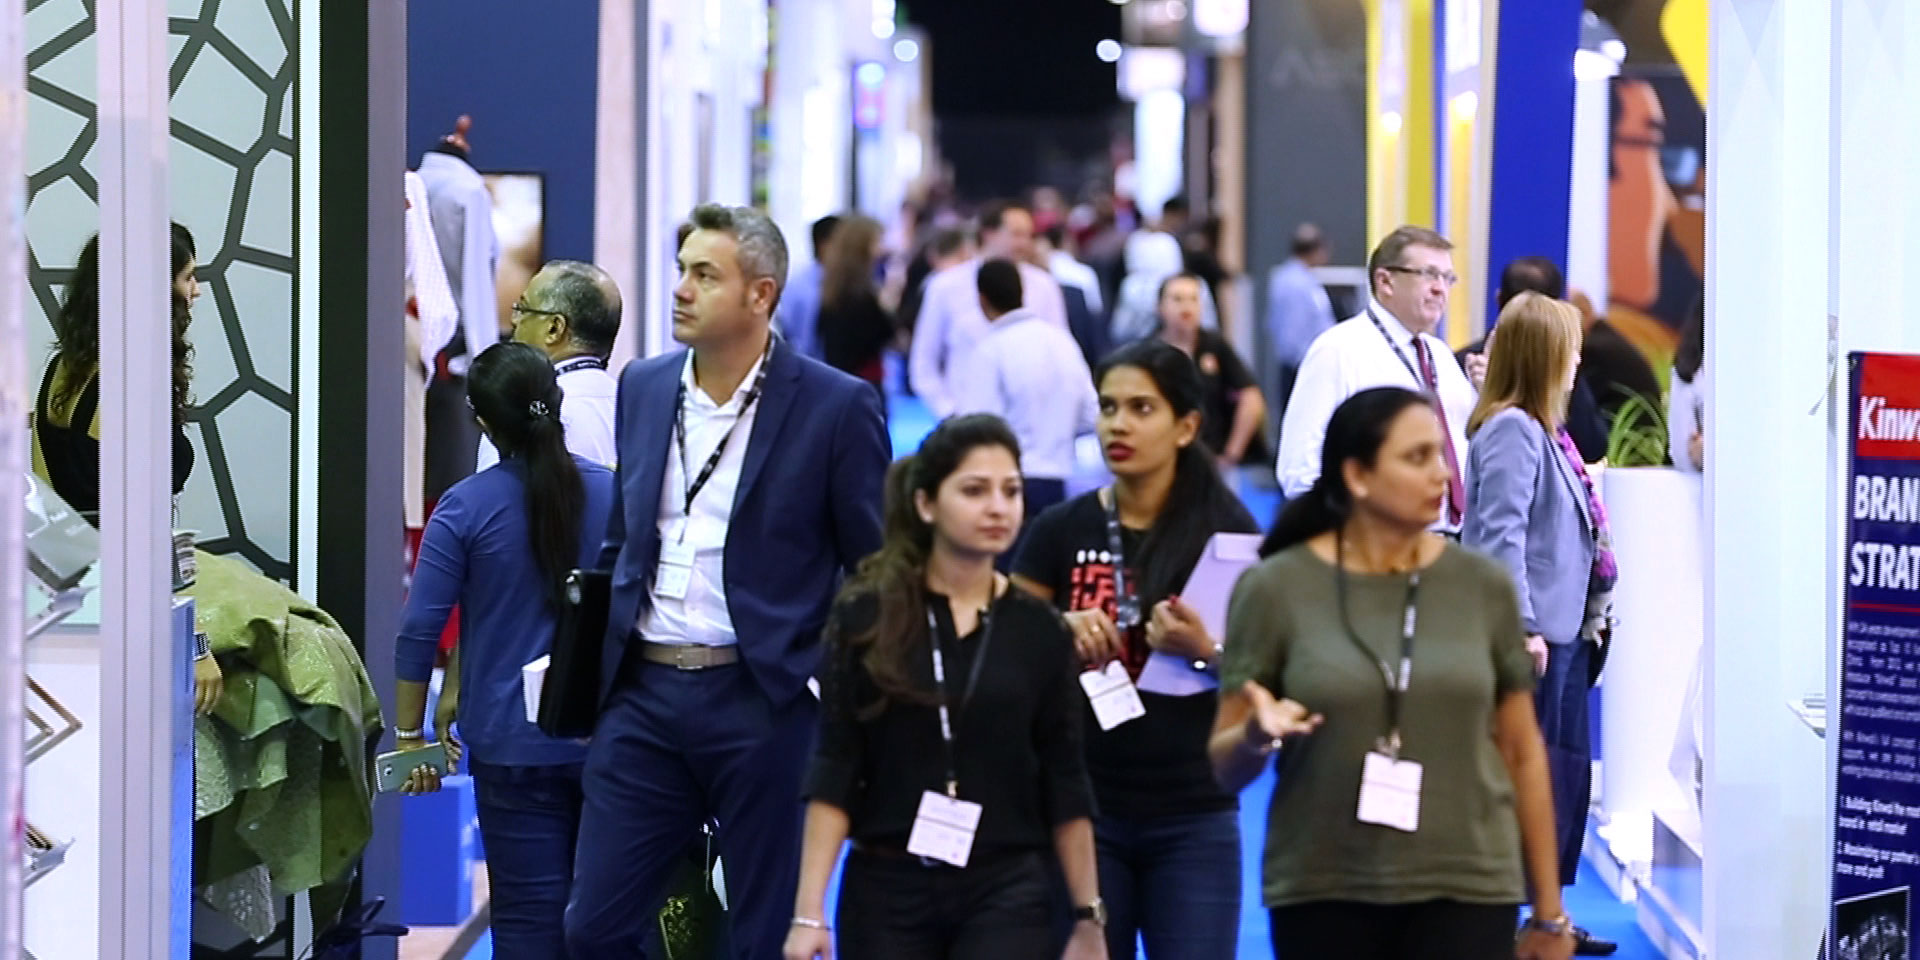 Fitness, Pools, and Golf will take Center Stage at 6th Annual Leisure Show Dubai